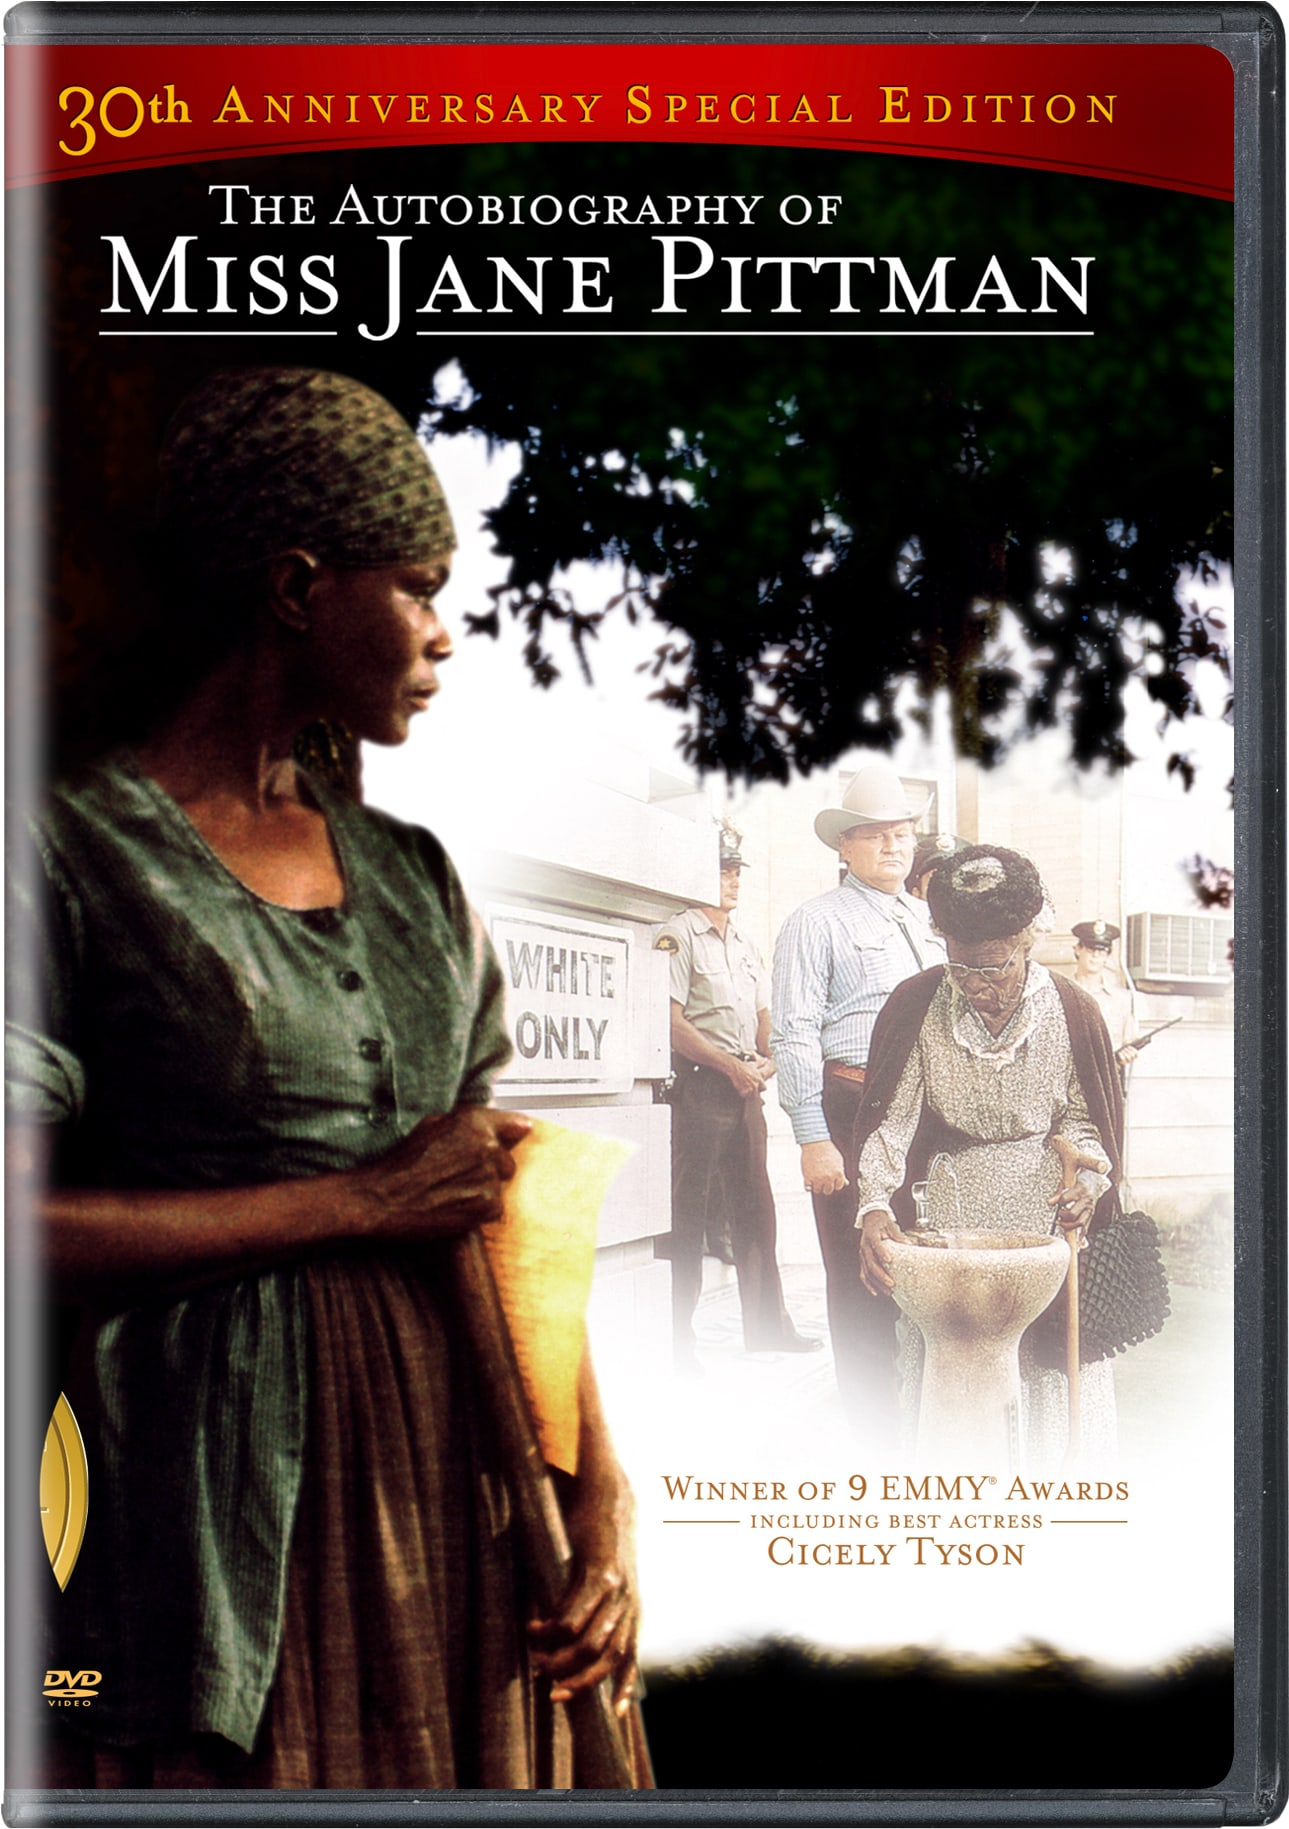 The Autobiography of Miss Jane Pittman (30th Anniversary Edition) [DVD]